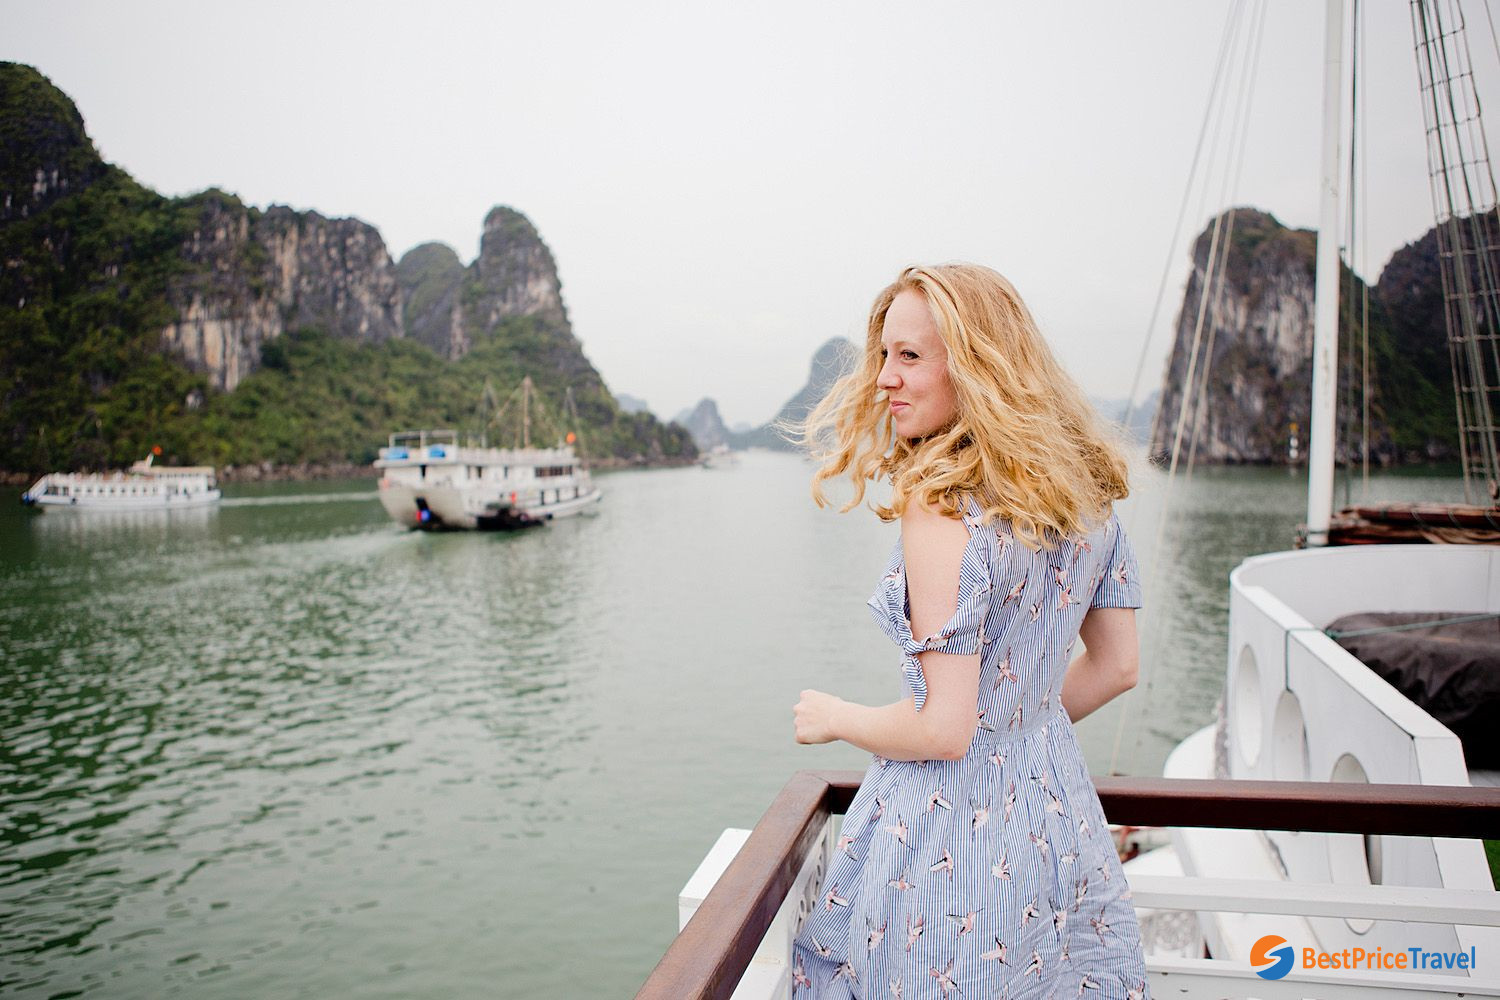 Halong Bay cruise is the best place to take stunning photos